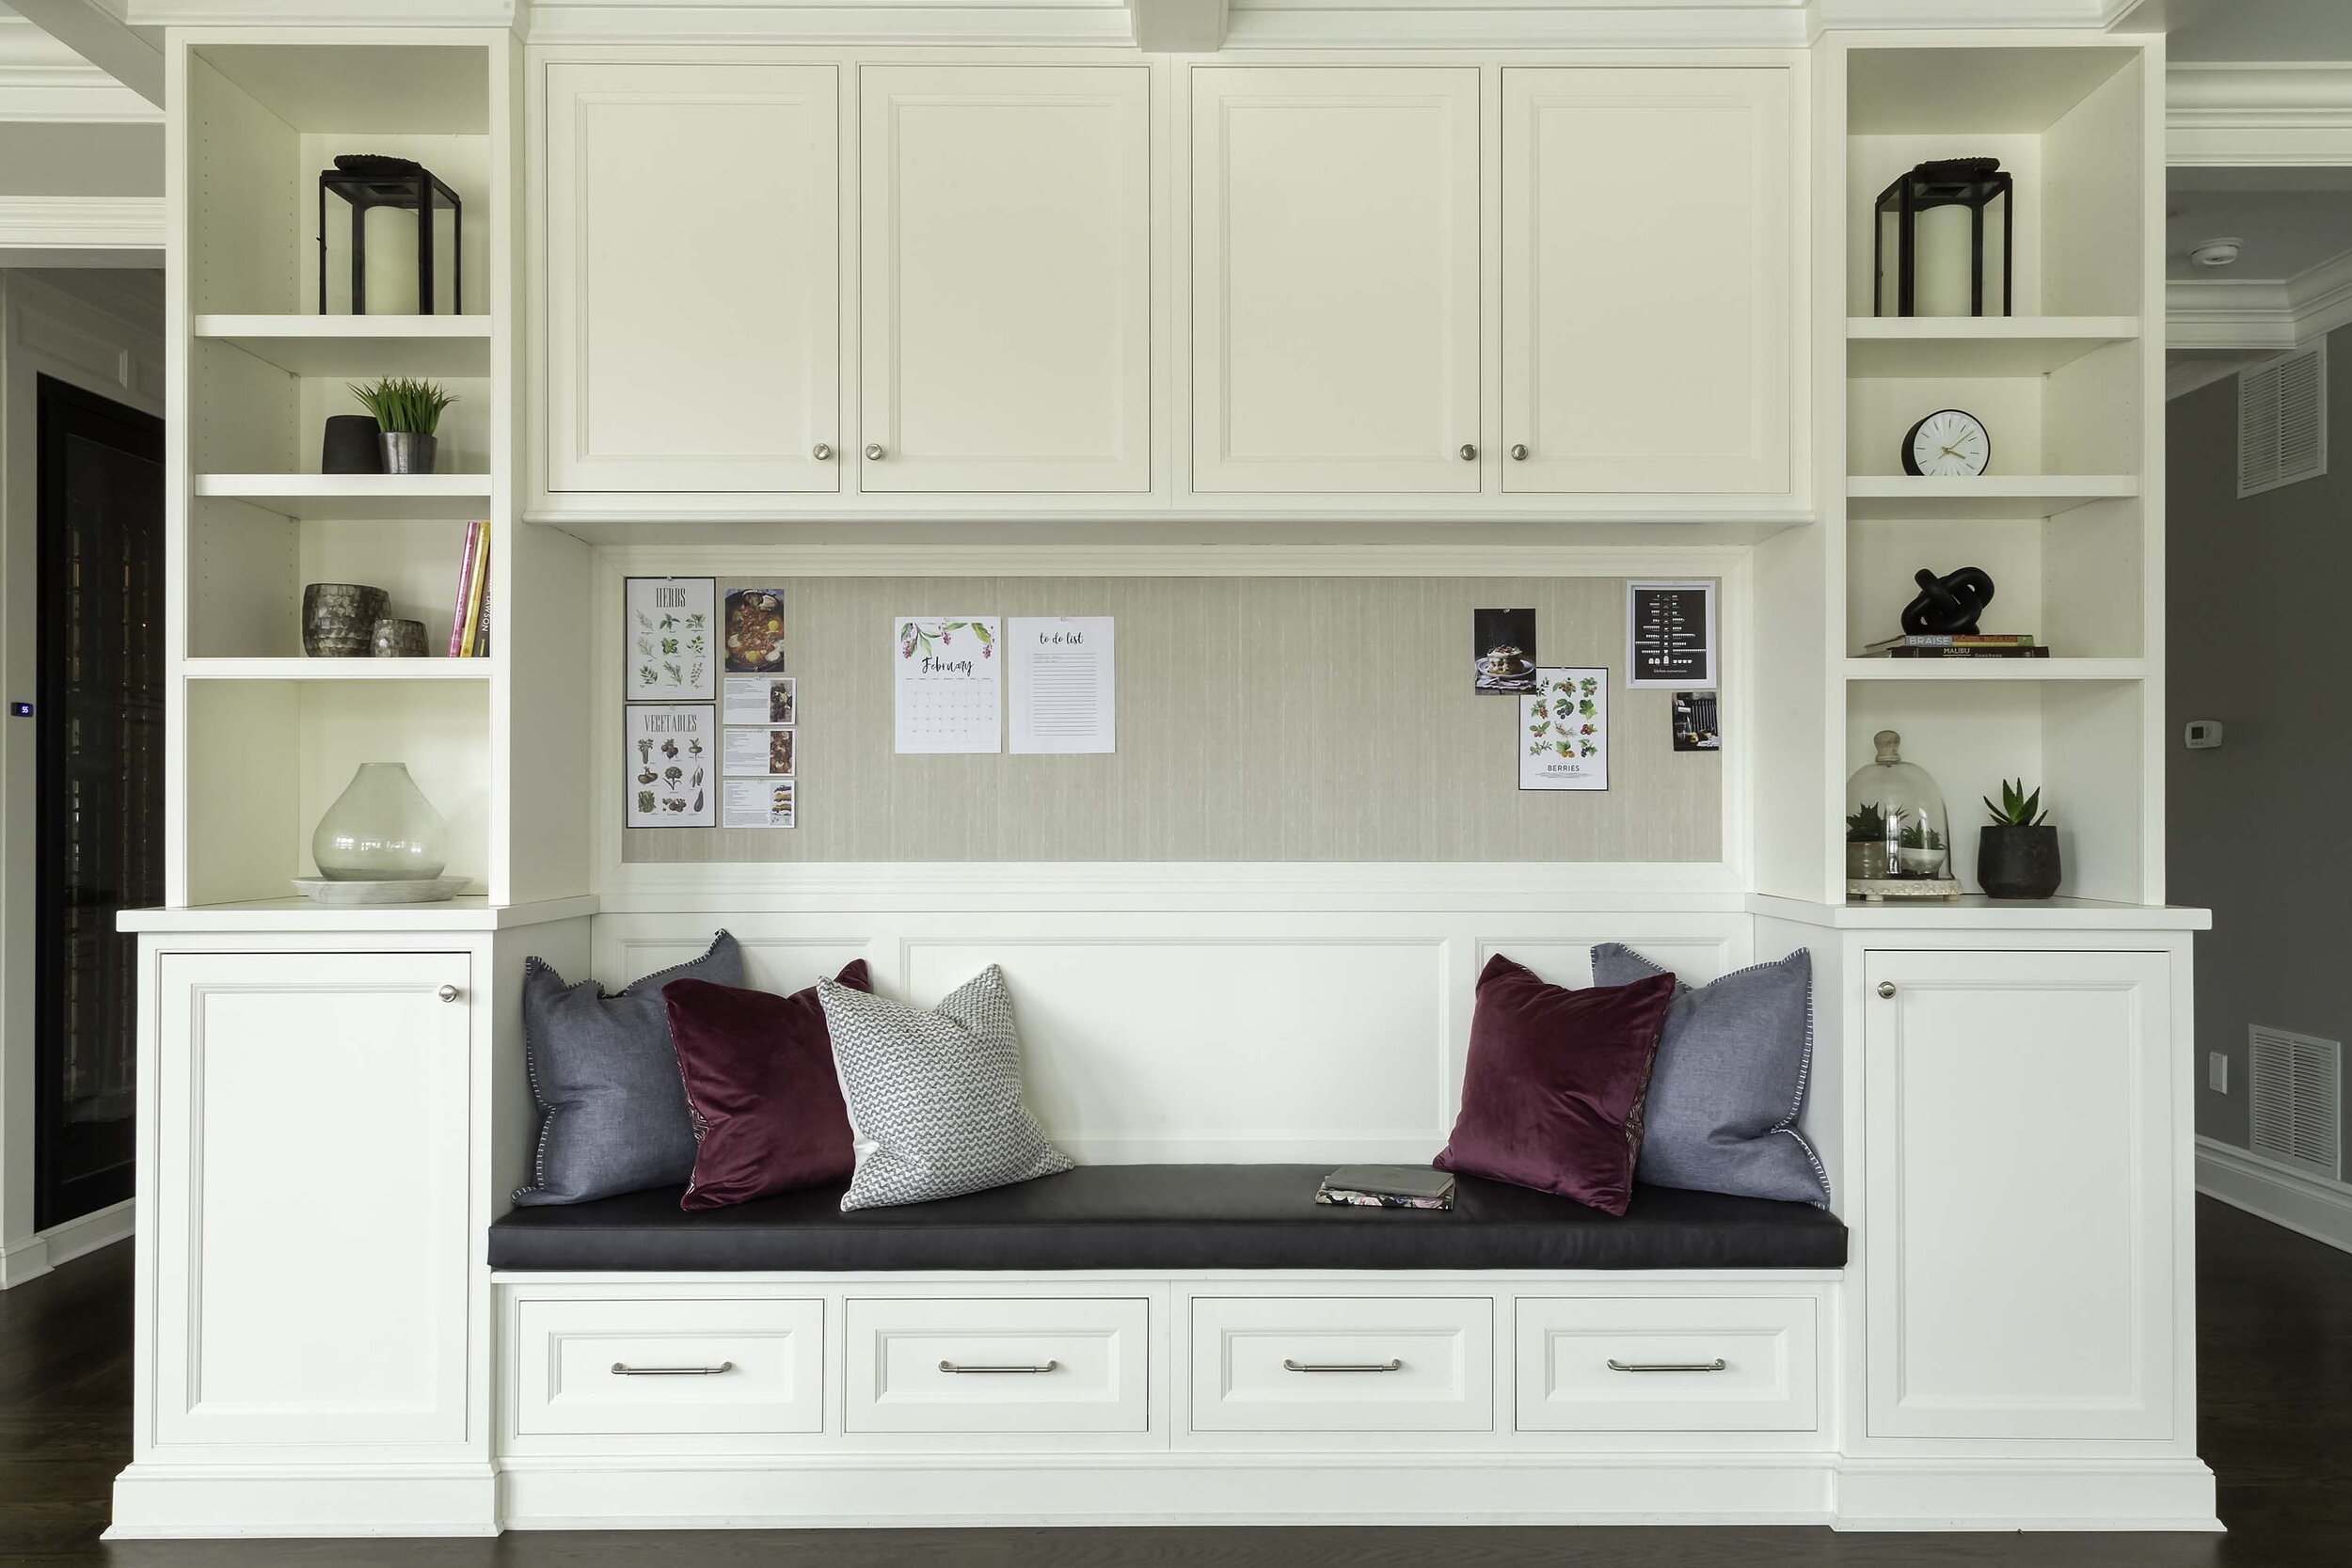 Transitional white kitchen with built in storage banquette